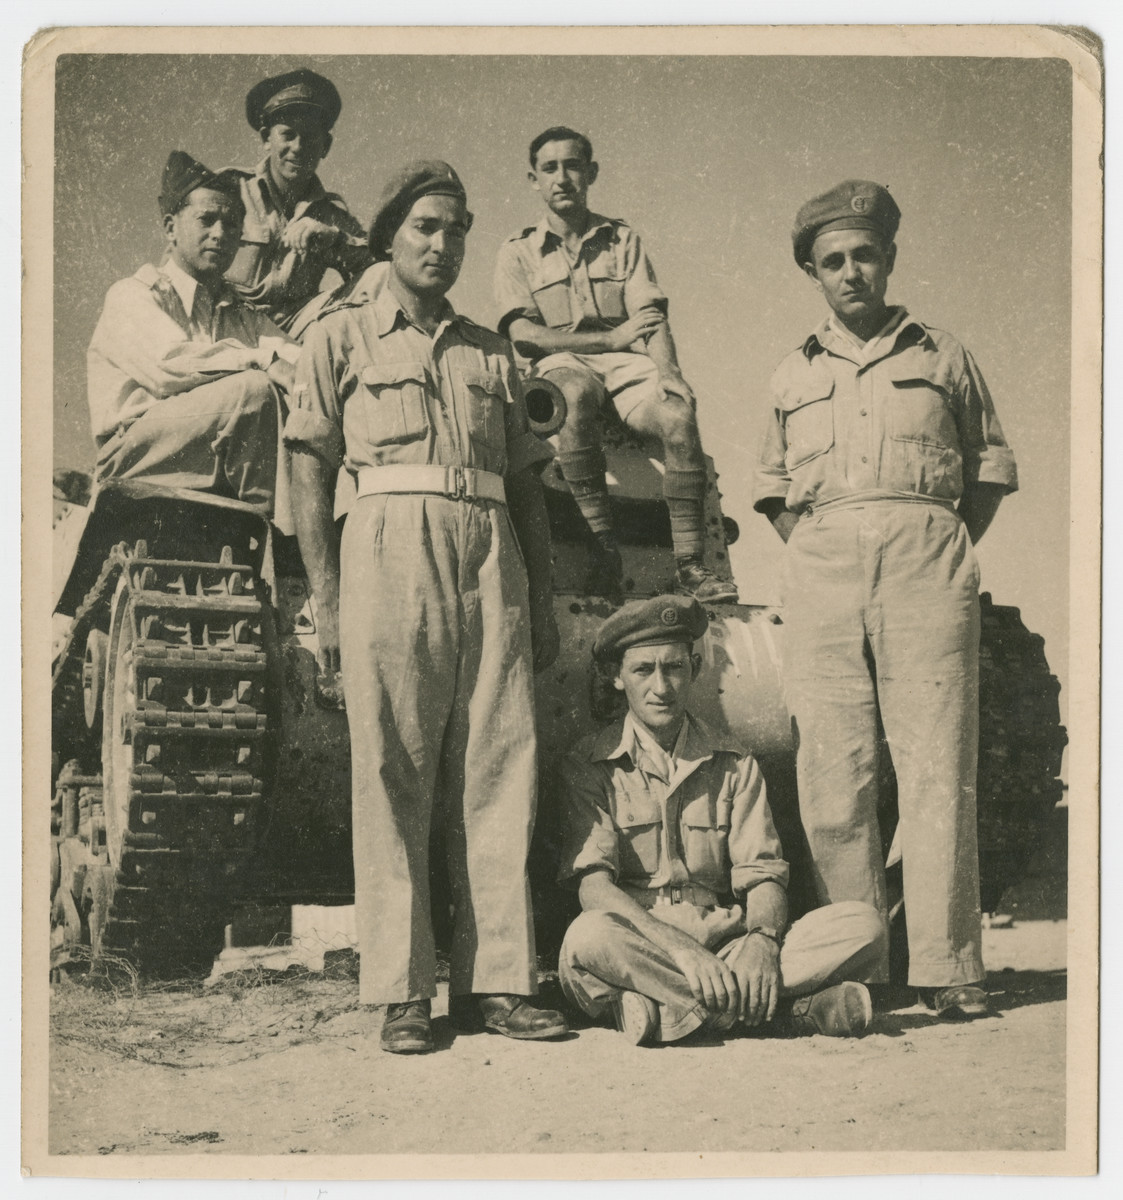 Jewish Brigade soldiers who had previously been interned on the Isle of Mauritius train in Egypt.  Among those pictured are Hersh Makowski, Israel Makowski, and Eric Gross.